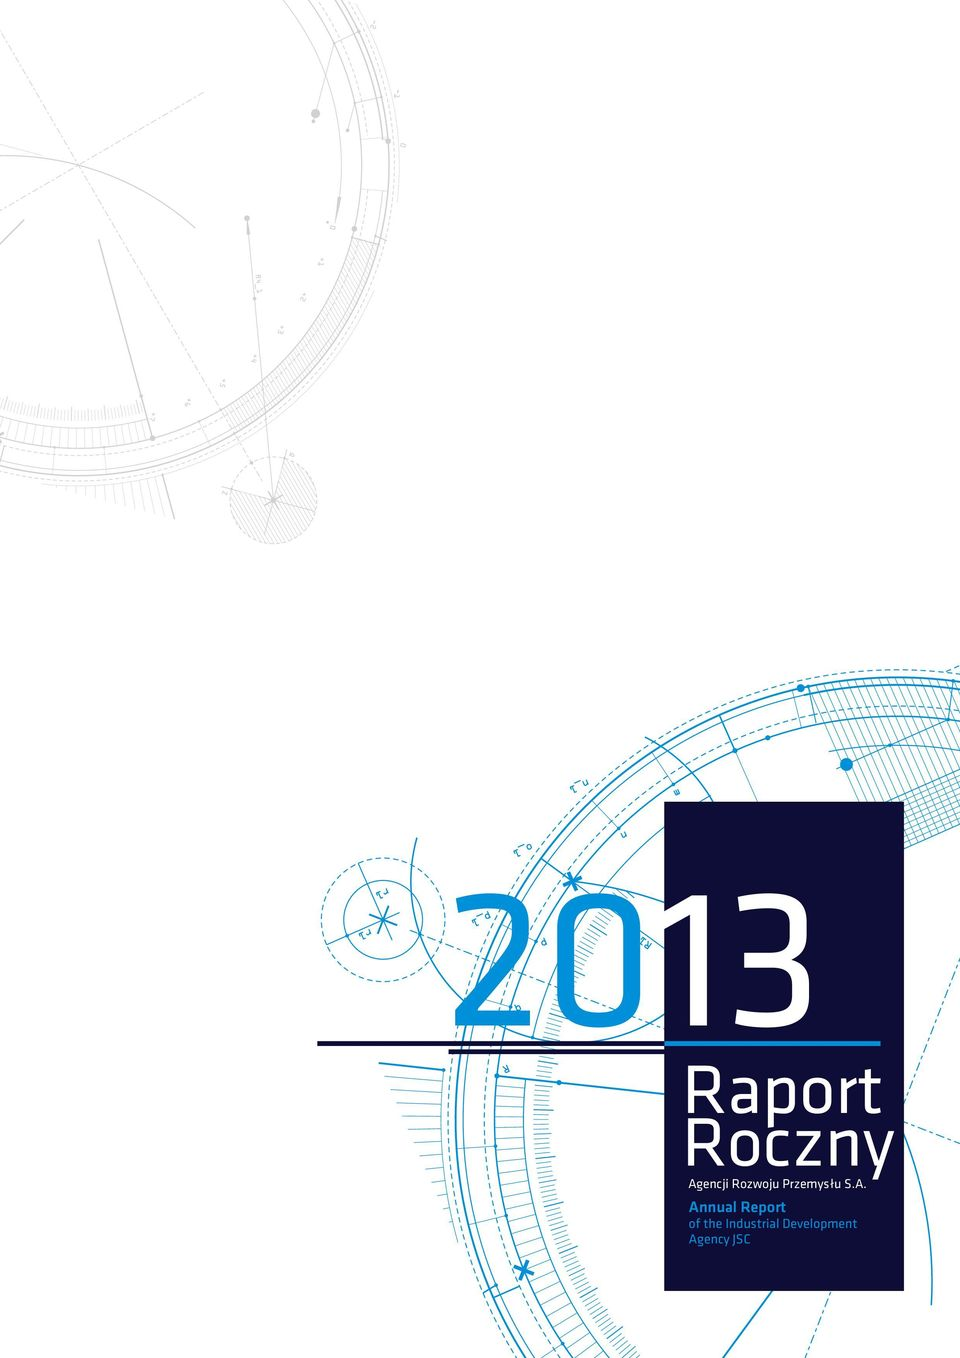 S.A. Annual Report of the